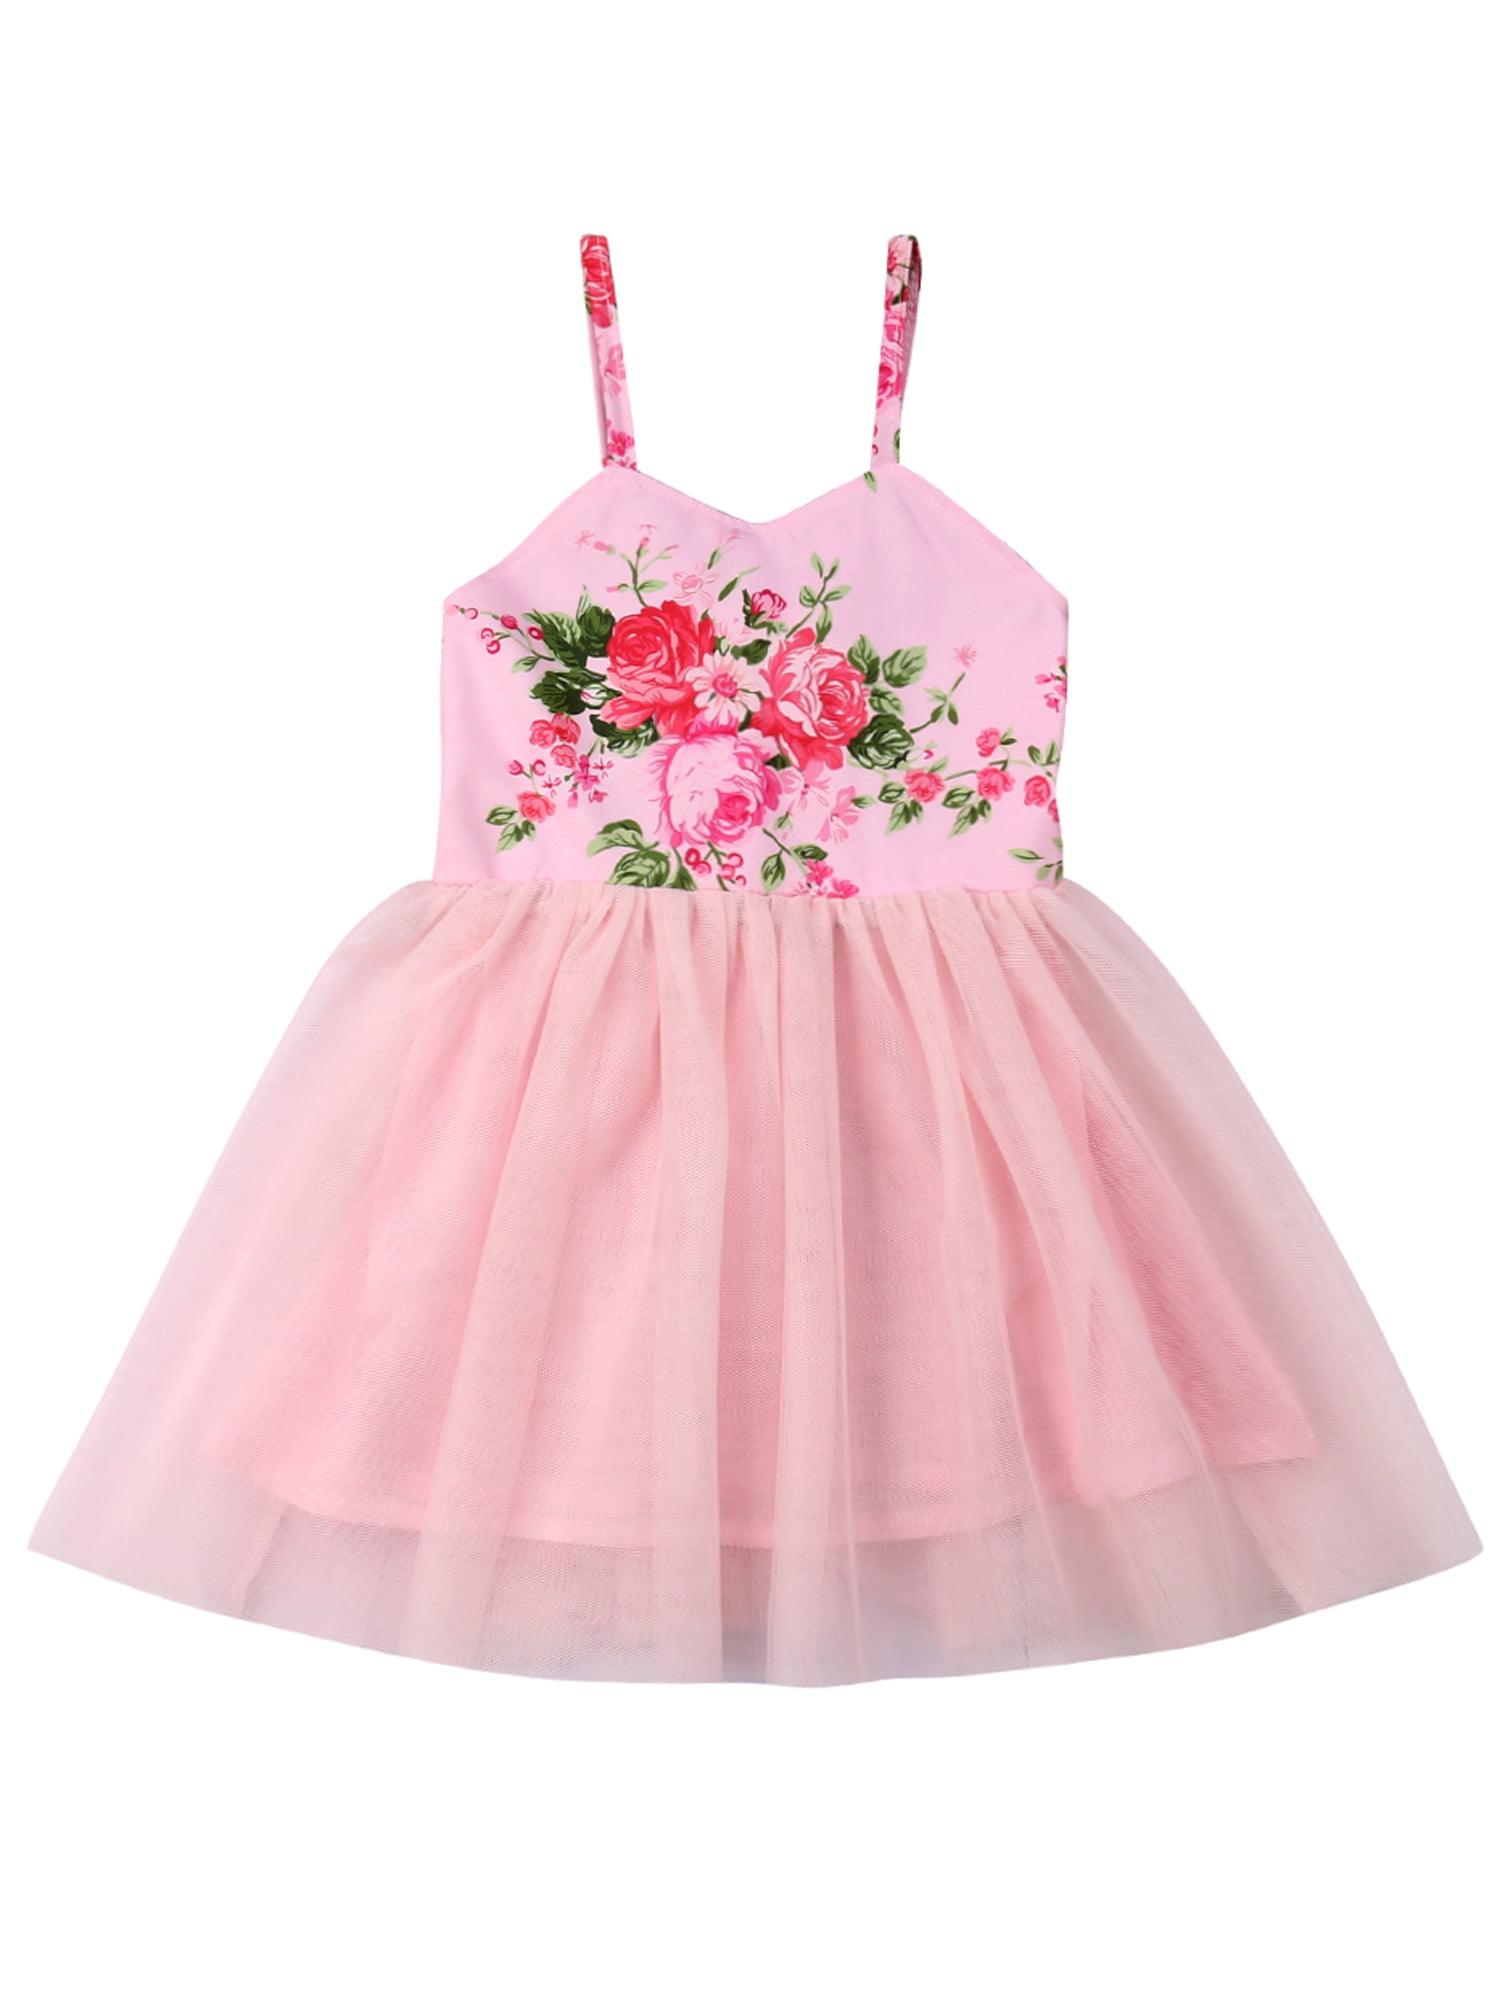 Cute Warmers JBEELATE Easter Day Newborn Baby Girls Rabbit Dress Sleeveless Clothes Mini Tutu Dress